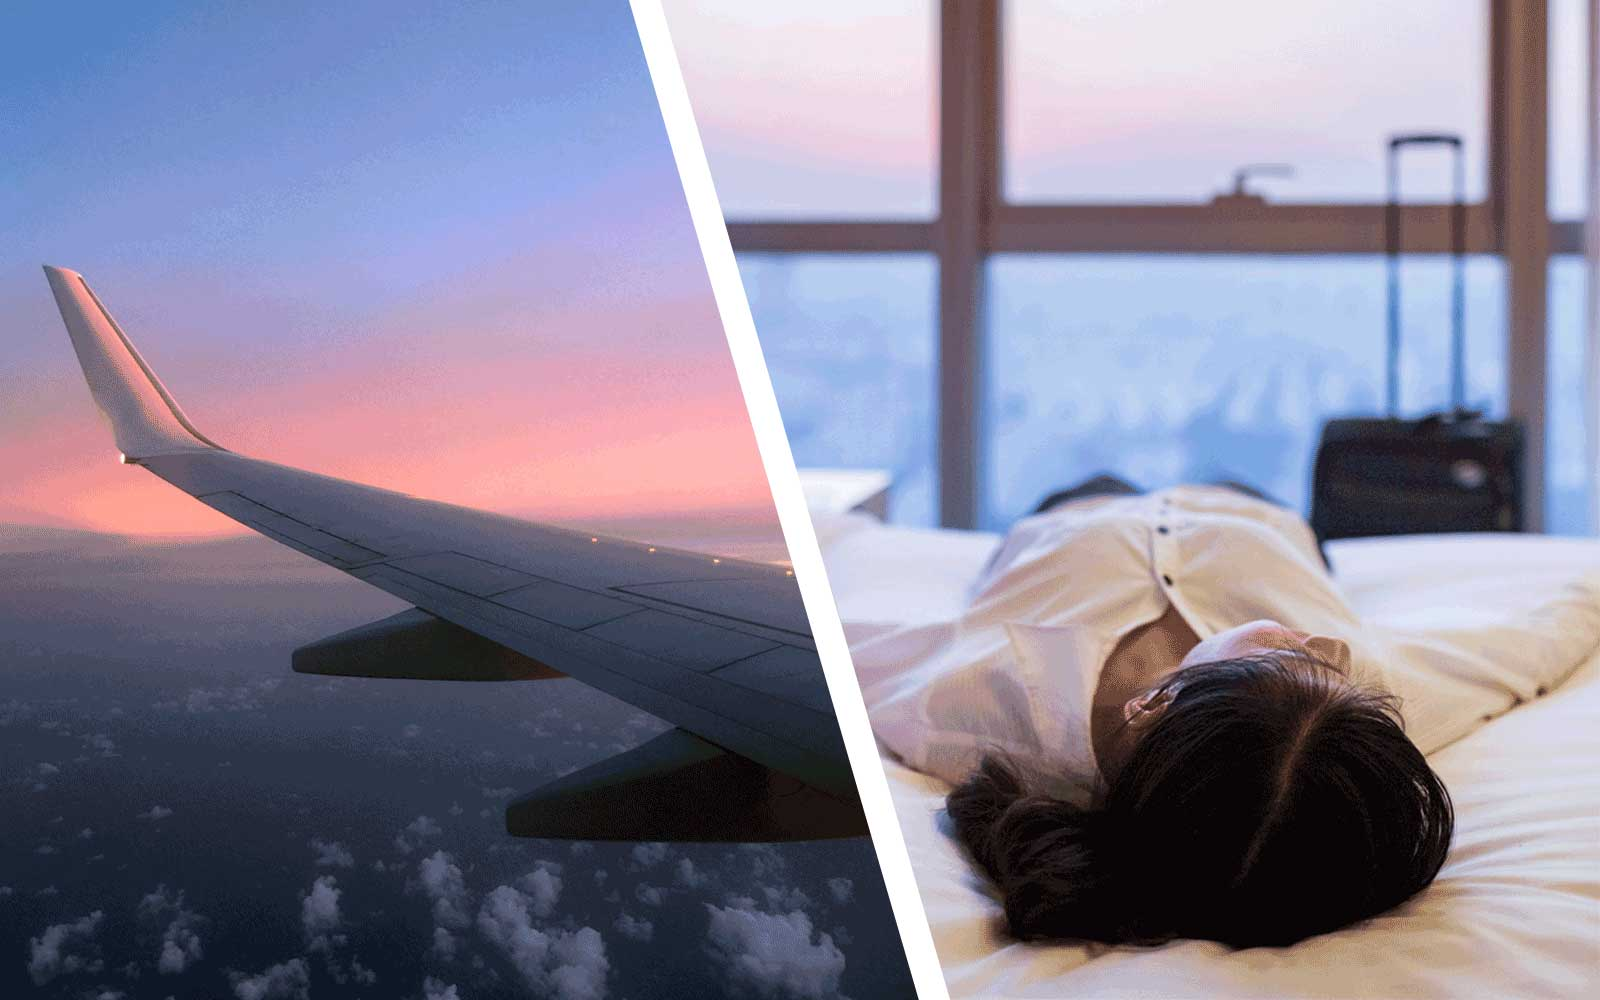 Airplane and Woman laying on hotel bed